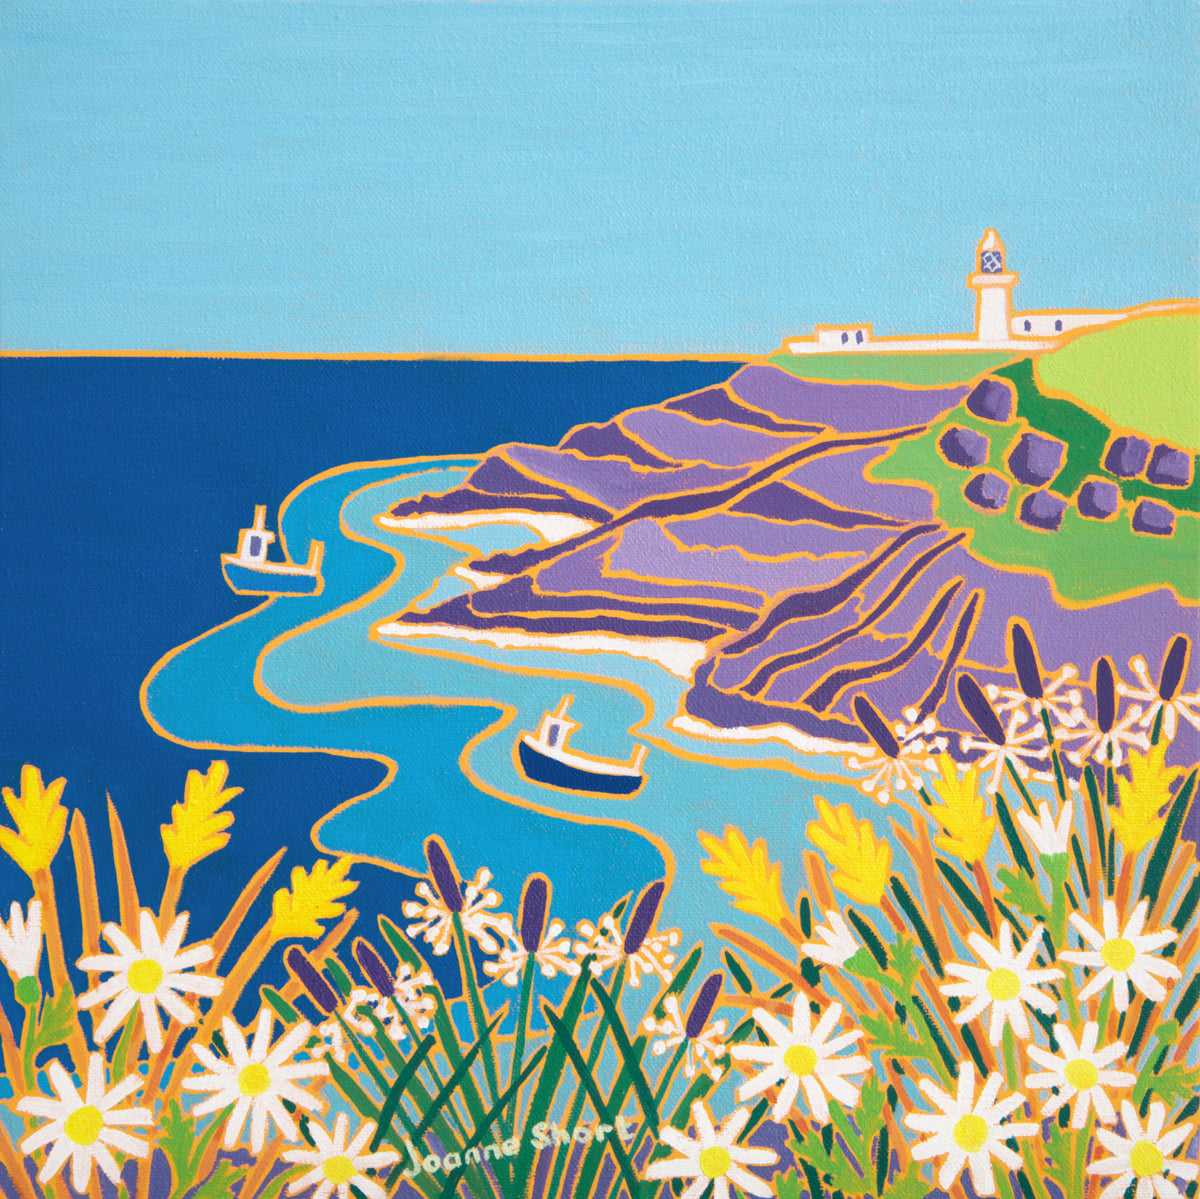 Joanne Short Painting. View to the Lighthouse, Pendeen